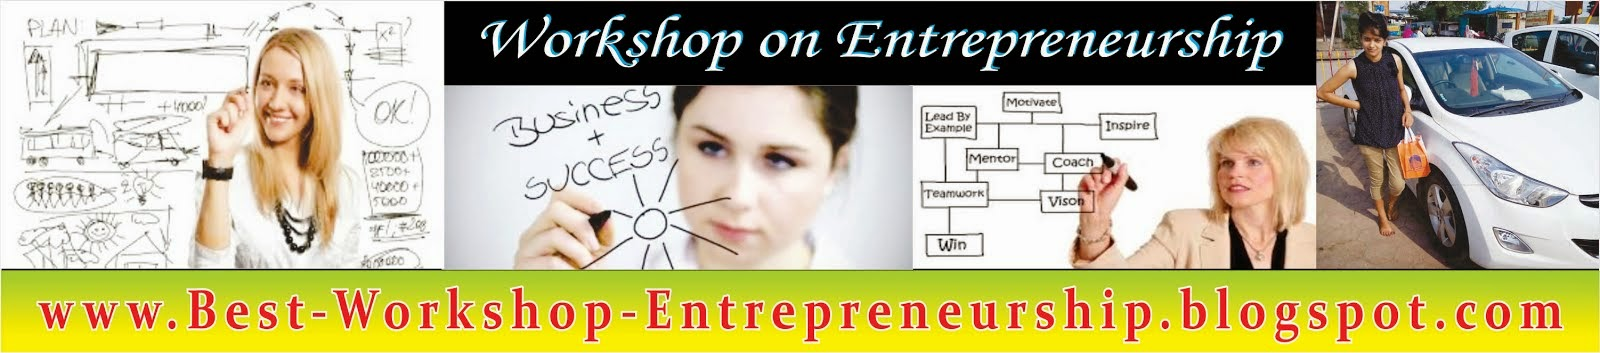 www.Best-Workshop-Entrepreneurship.blogspot.com